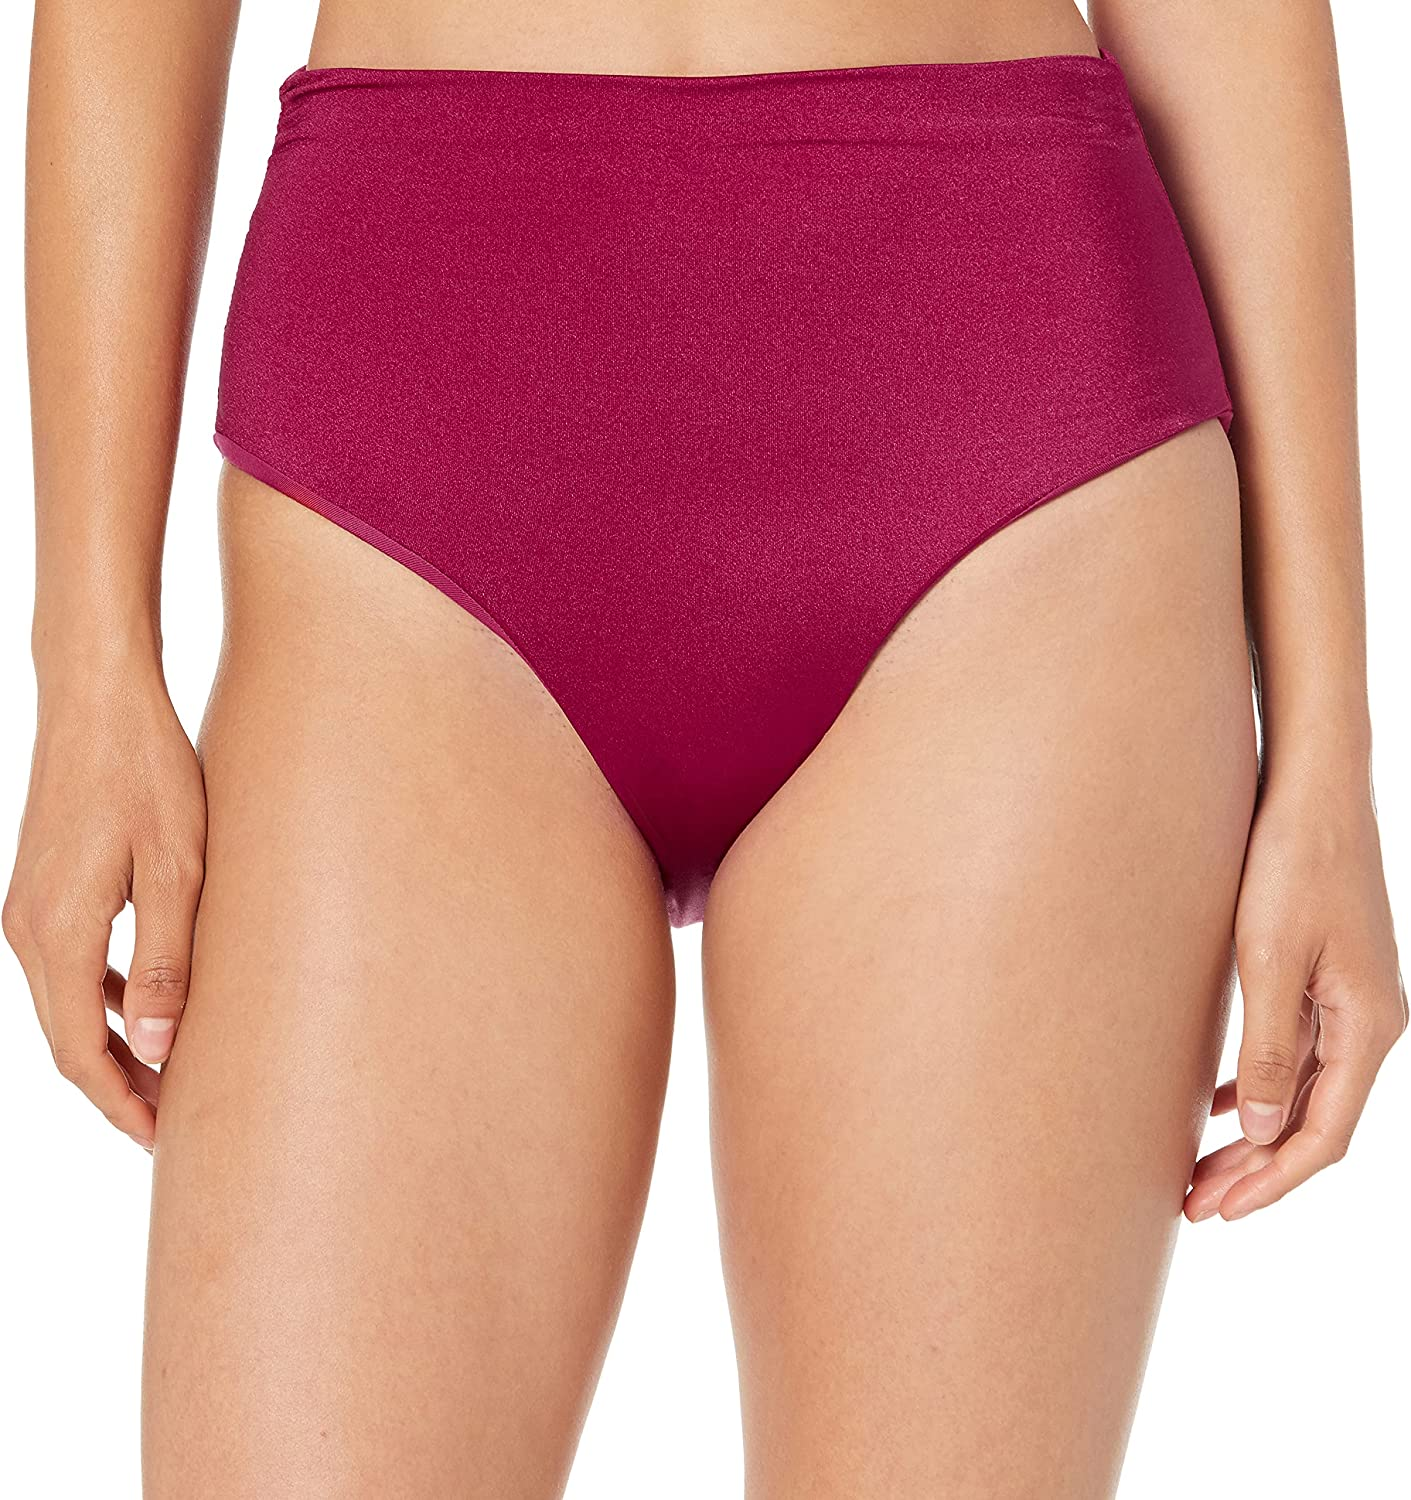 TAHARI Women's Special price for a limited time Ruched Transformable High Swi Bottom Bikini Waist 2021 new